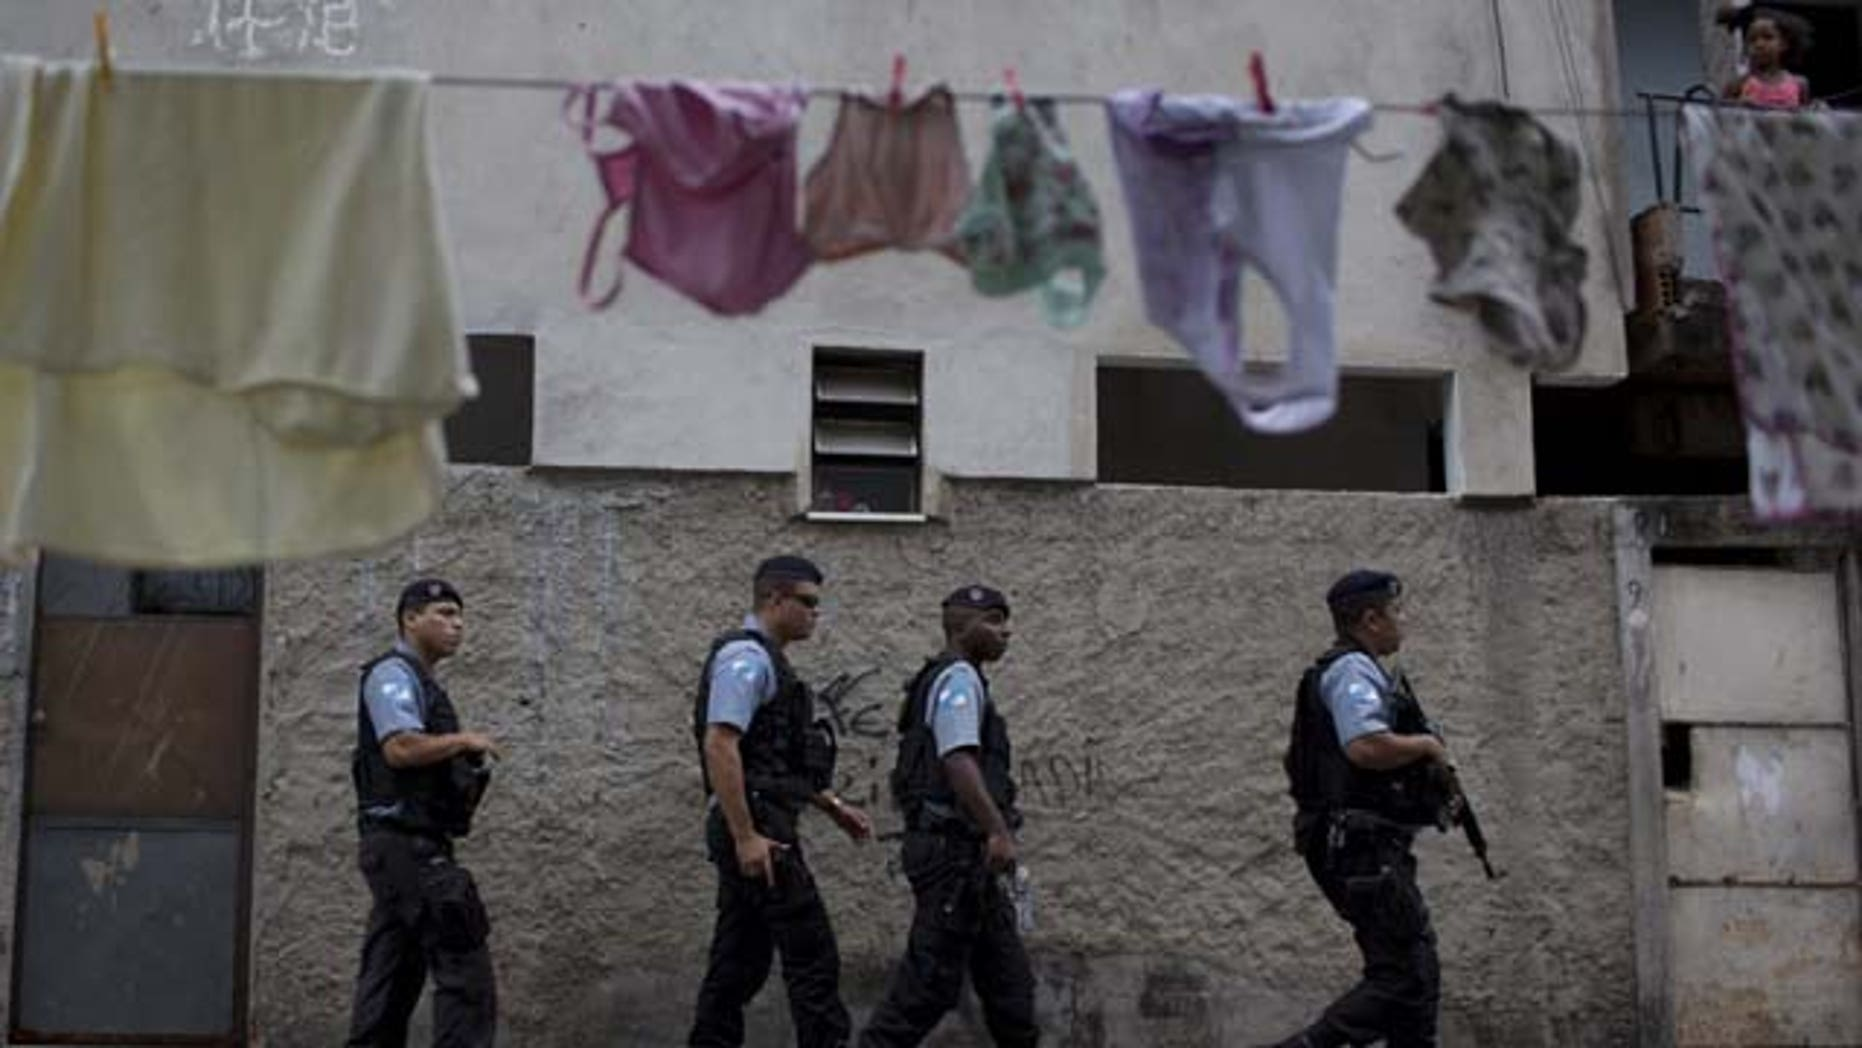 July 21, 2013: Policemen from the Pacifying Police Unit, or 'UPP', patrol in the Varginha area of the Manguinhos slum complex where Pope Francis will visit next week during his trip to Rio de Janeiro, Brazil (AP Photo)